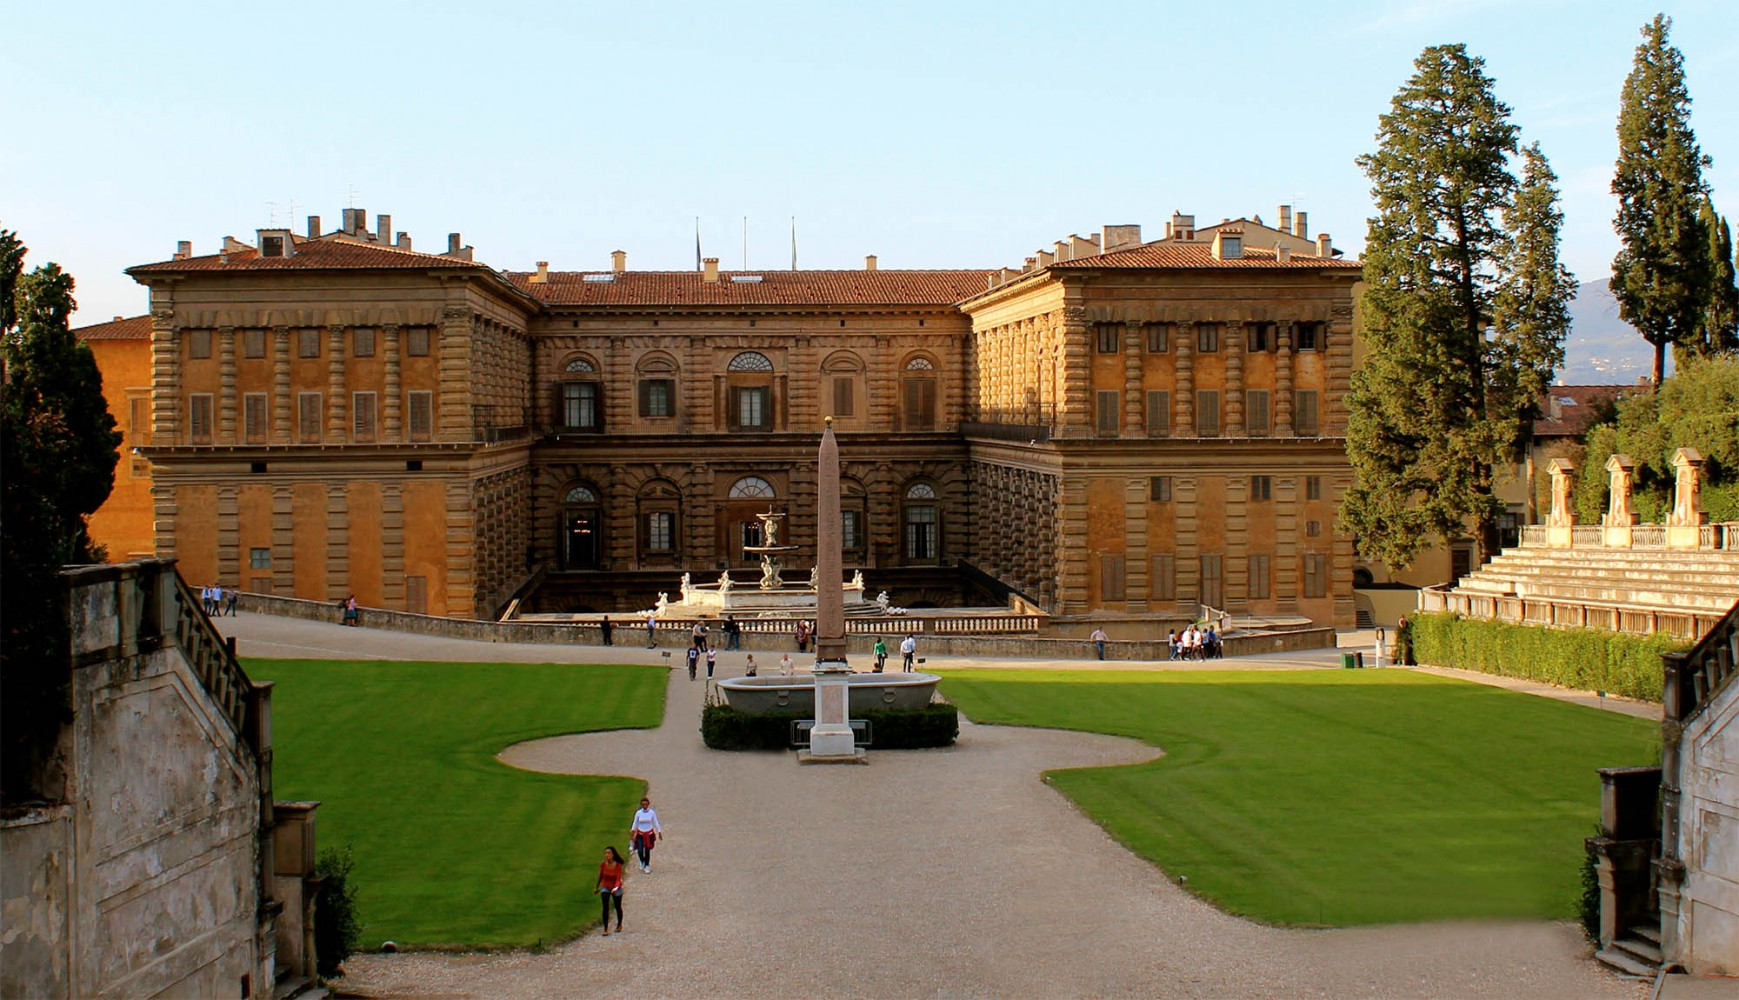 DISCOVER THE TREASURES OF A ROYAL PALACE<p>Pitti Palace, its Gallery and Apartments: the most impressive residence of the Medici family</p>---BOOK NOW---pitti-palace-a-royal-residence